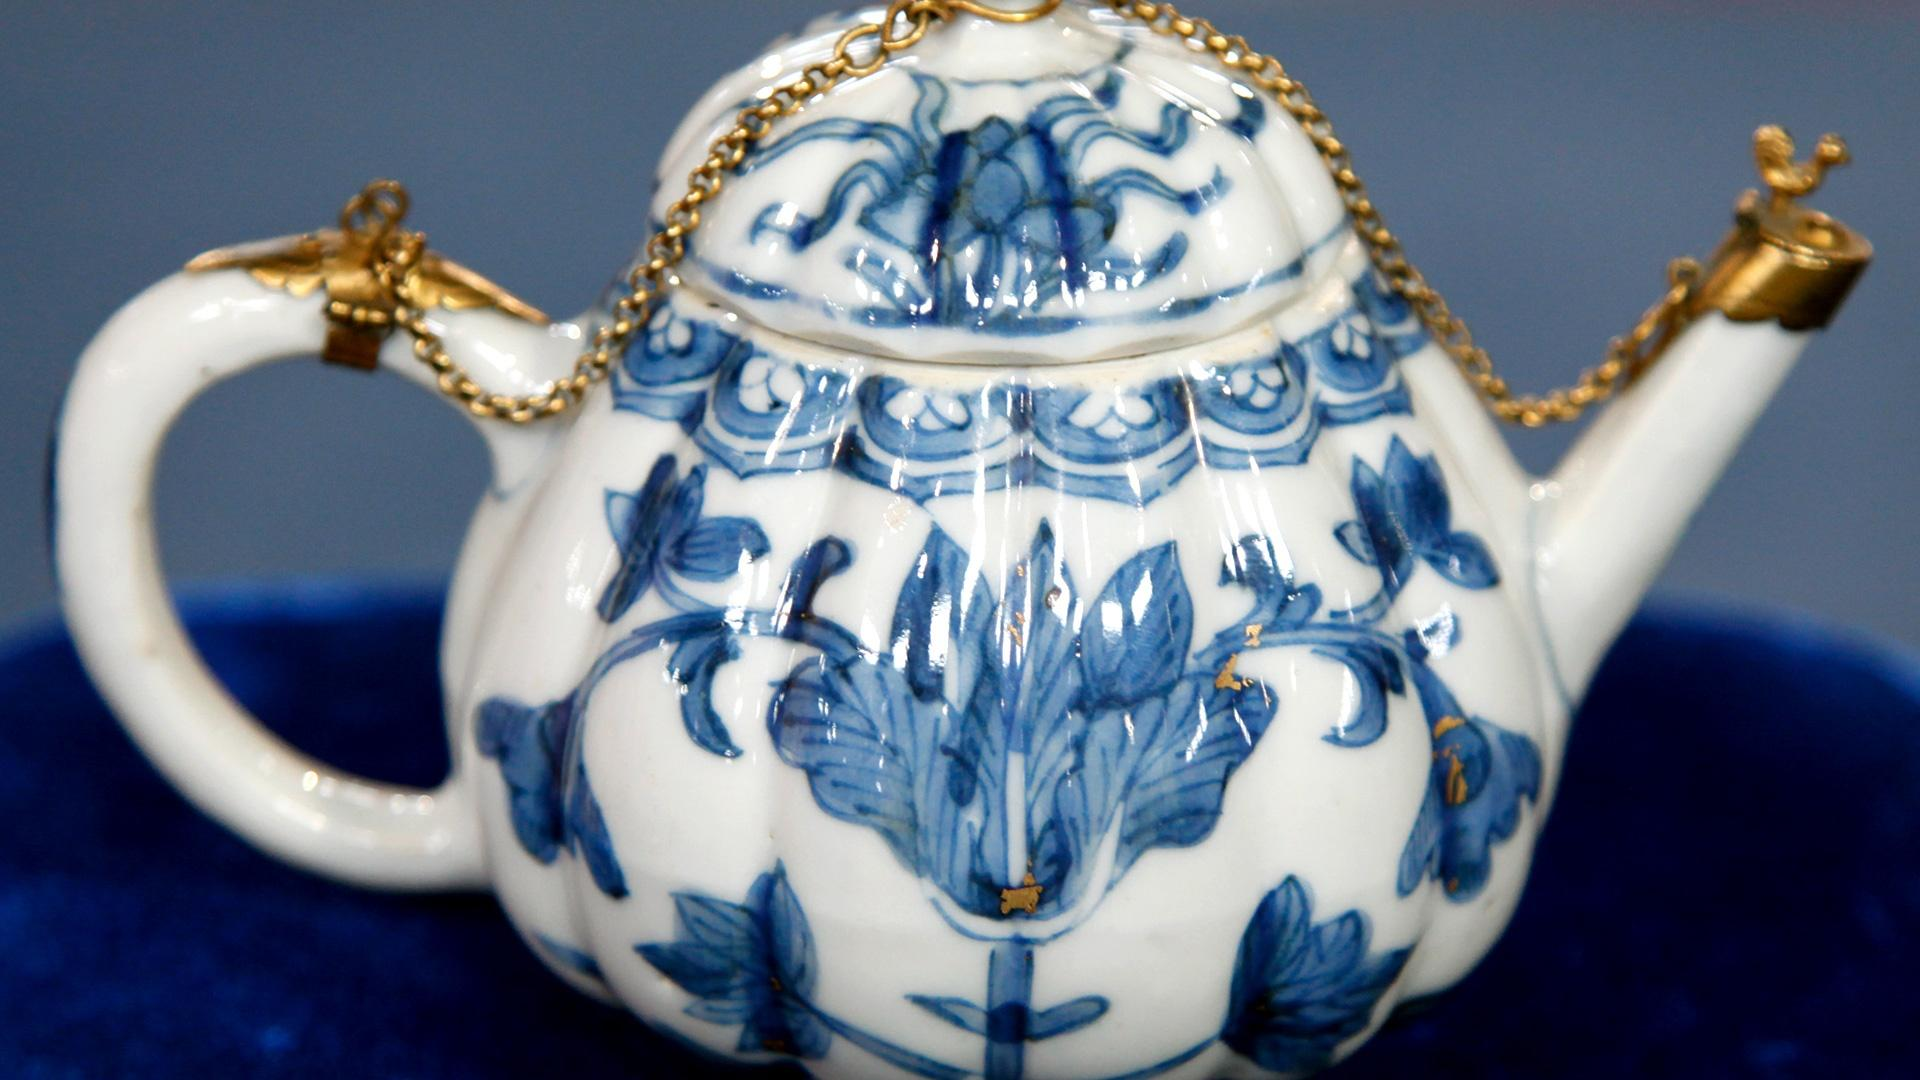 Appraisal: Chinese Export Porcelain Teapot, ca  1700